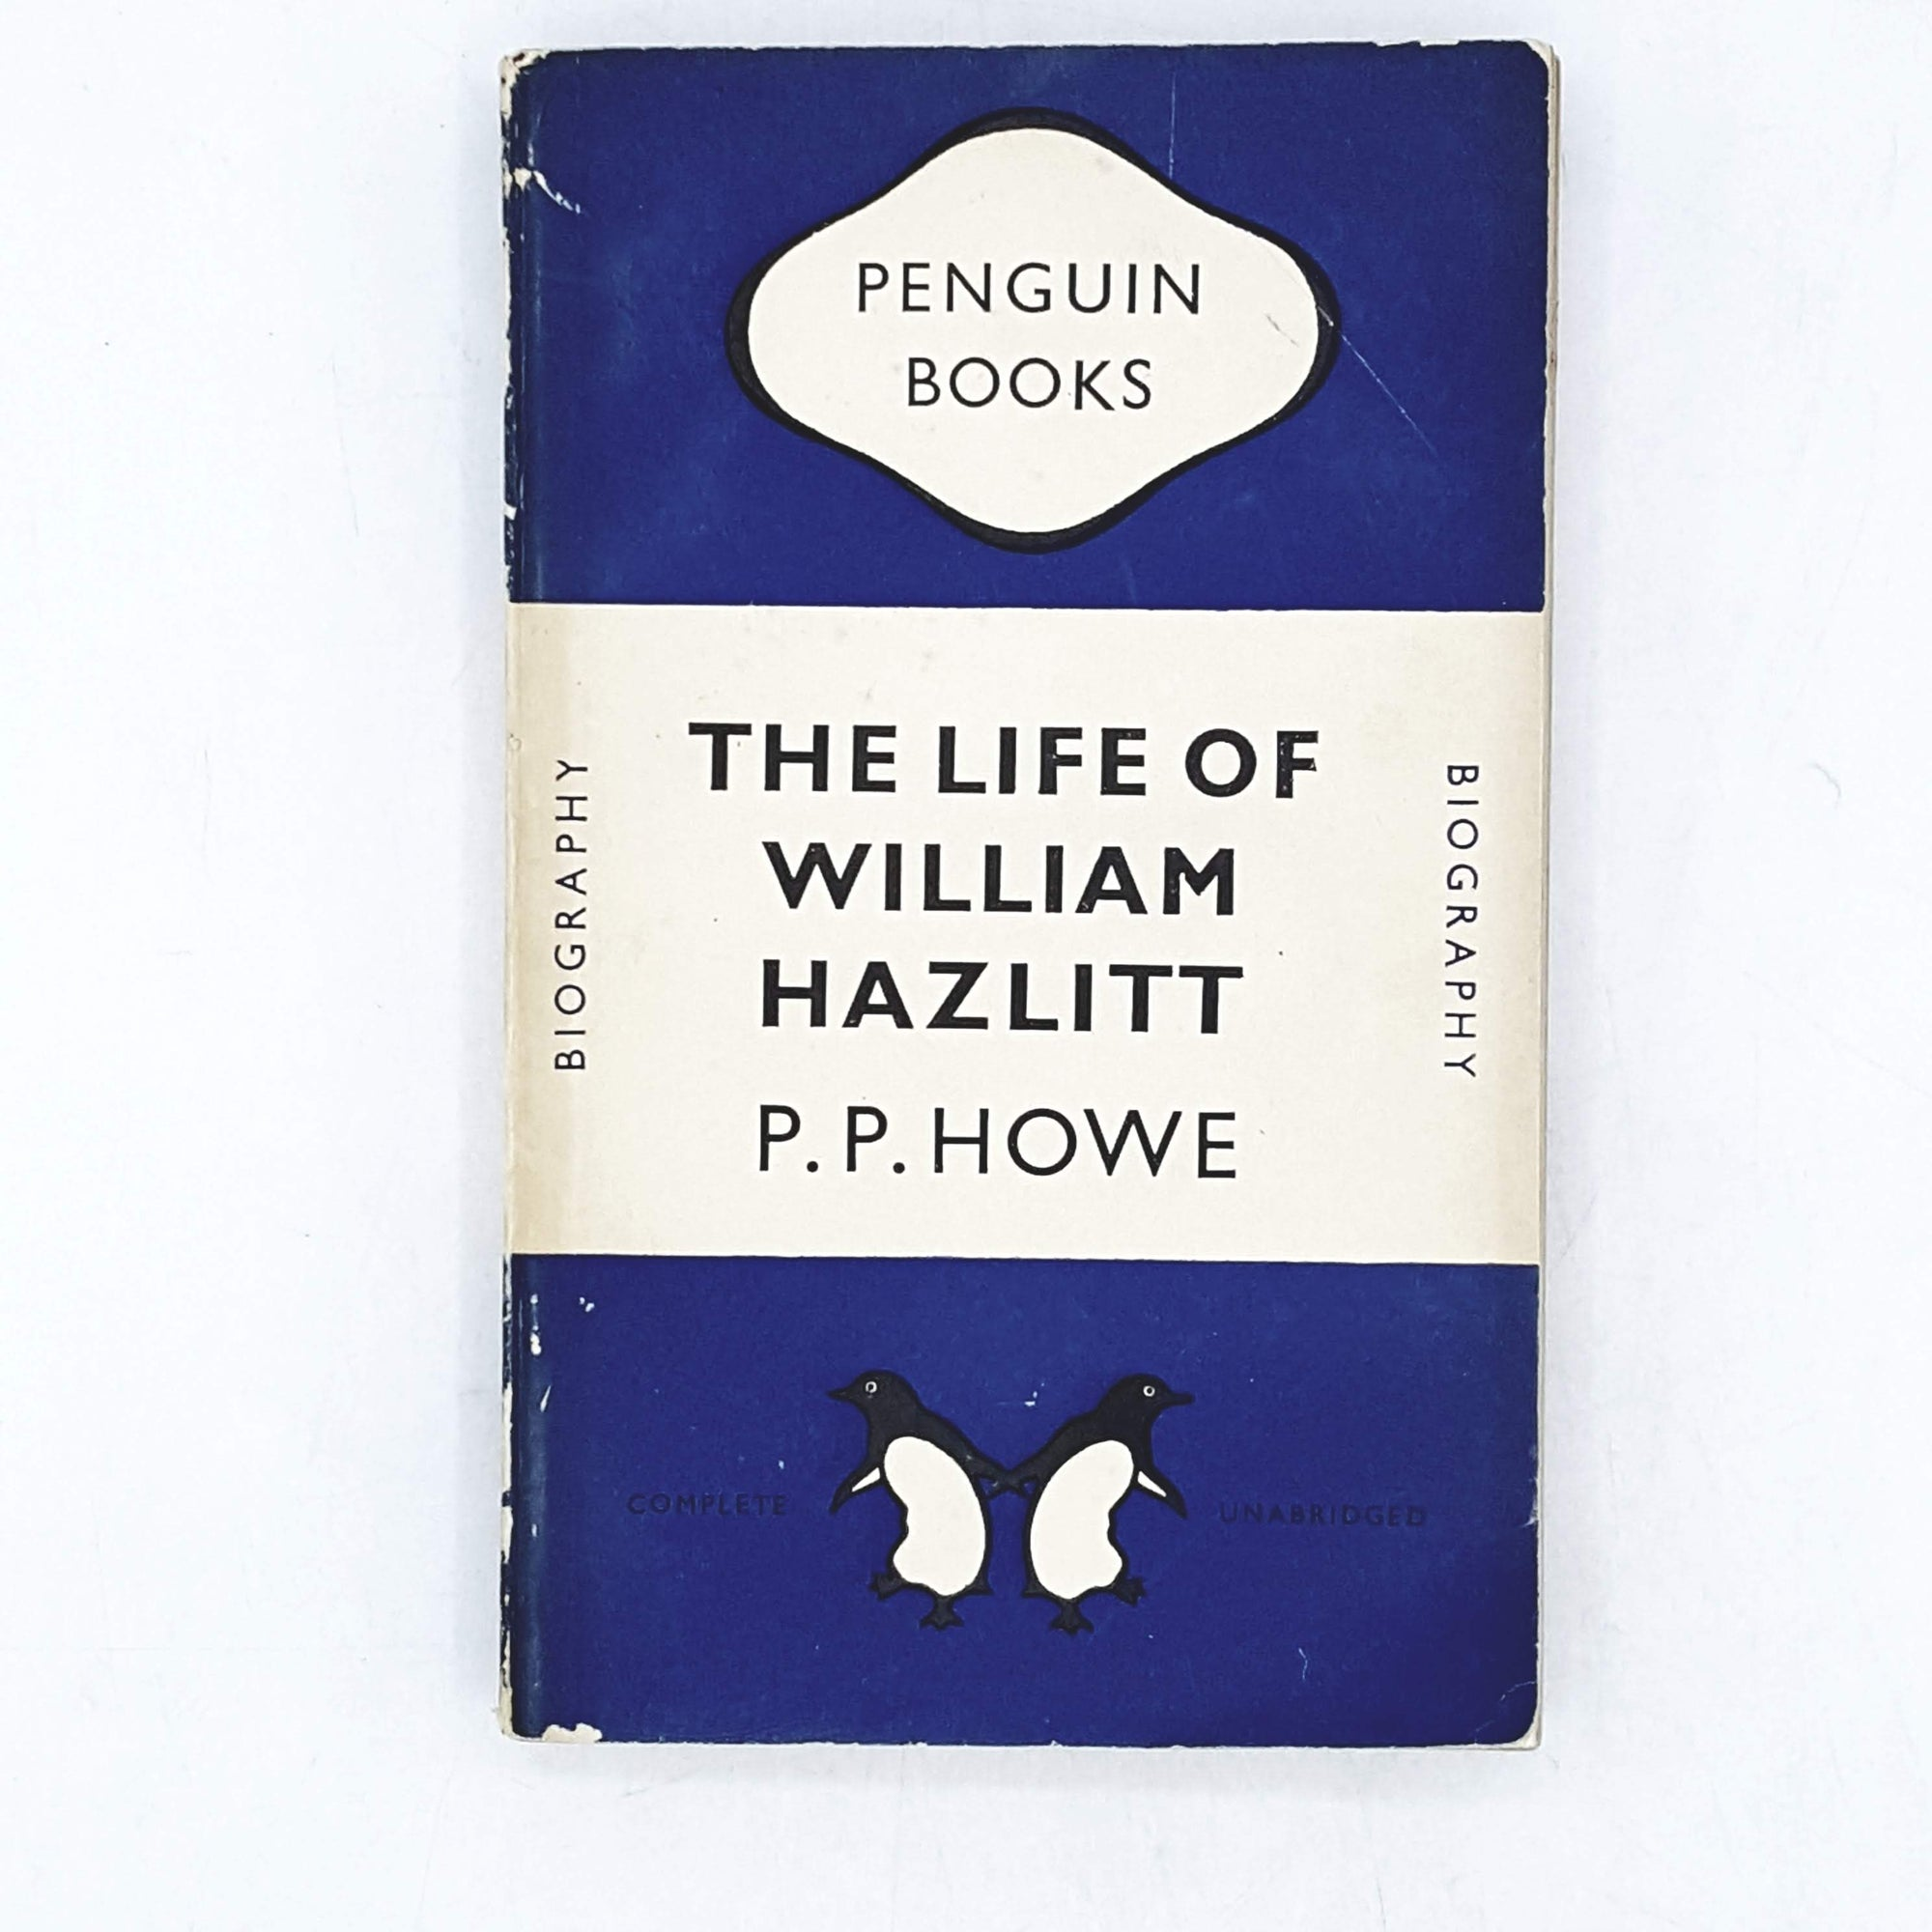 vintage-penguin-the-life-of-william-hazlitt-biography-blue-country-house-library